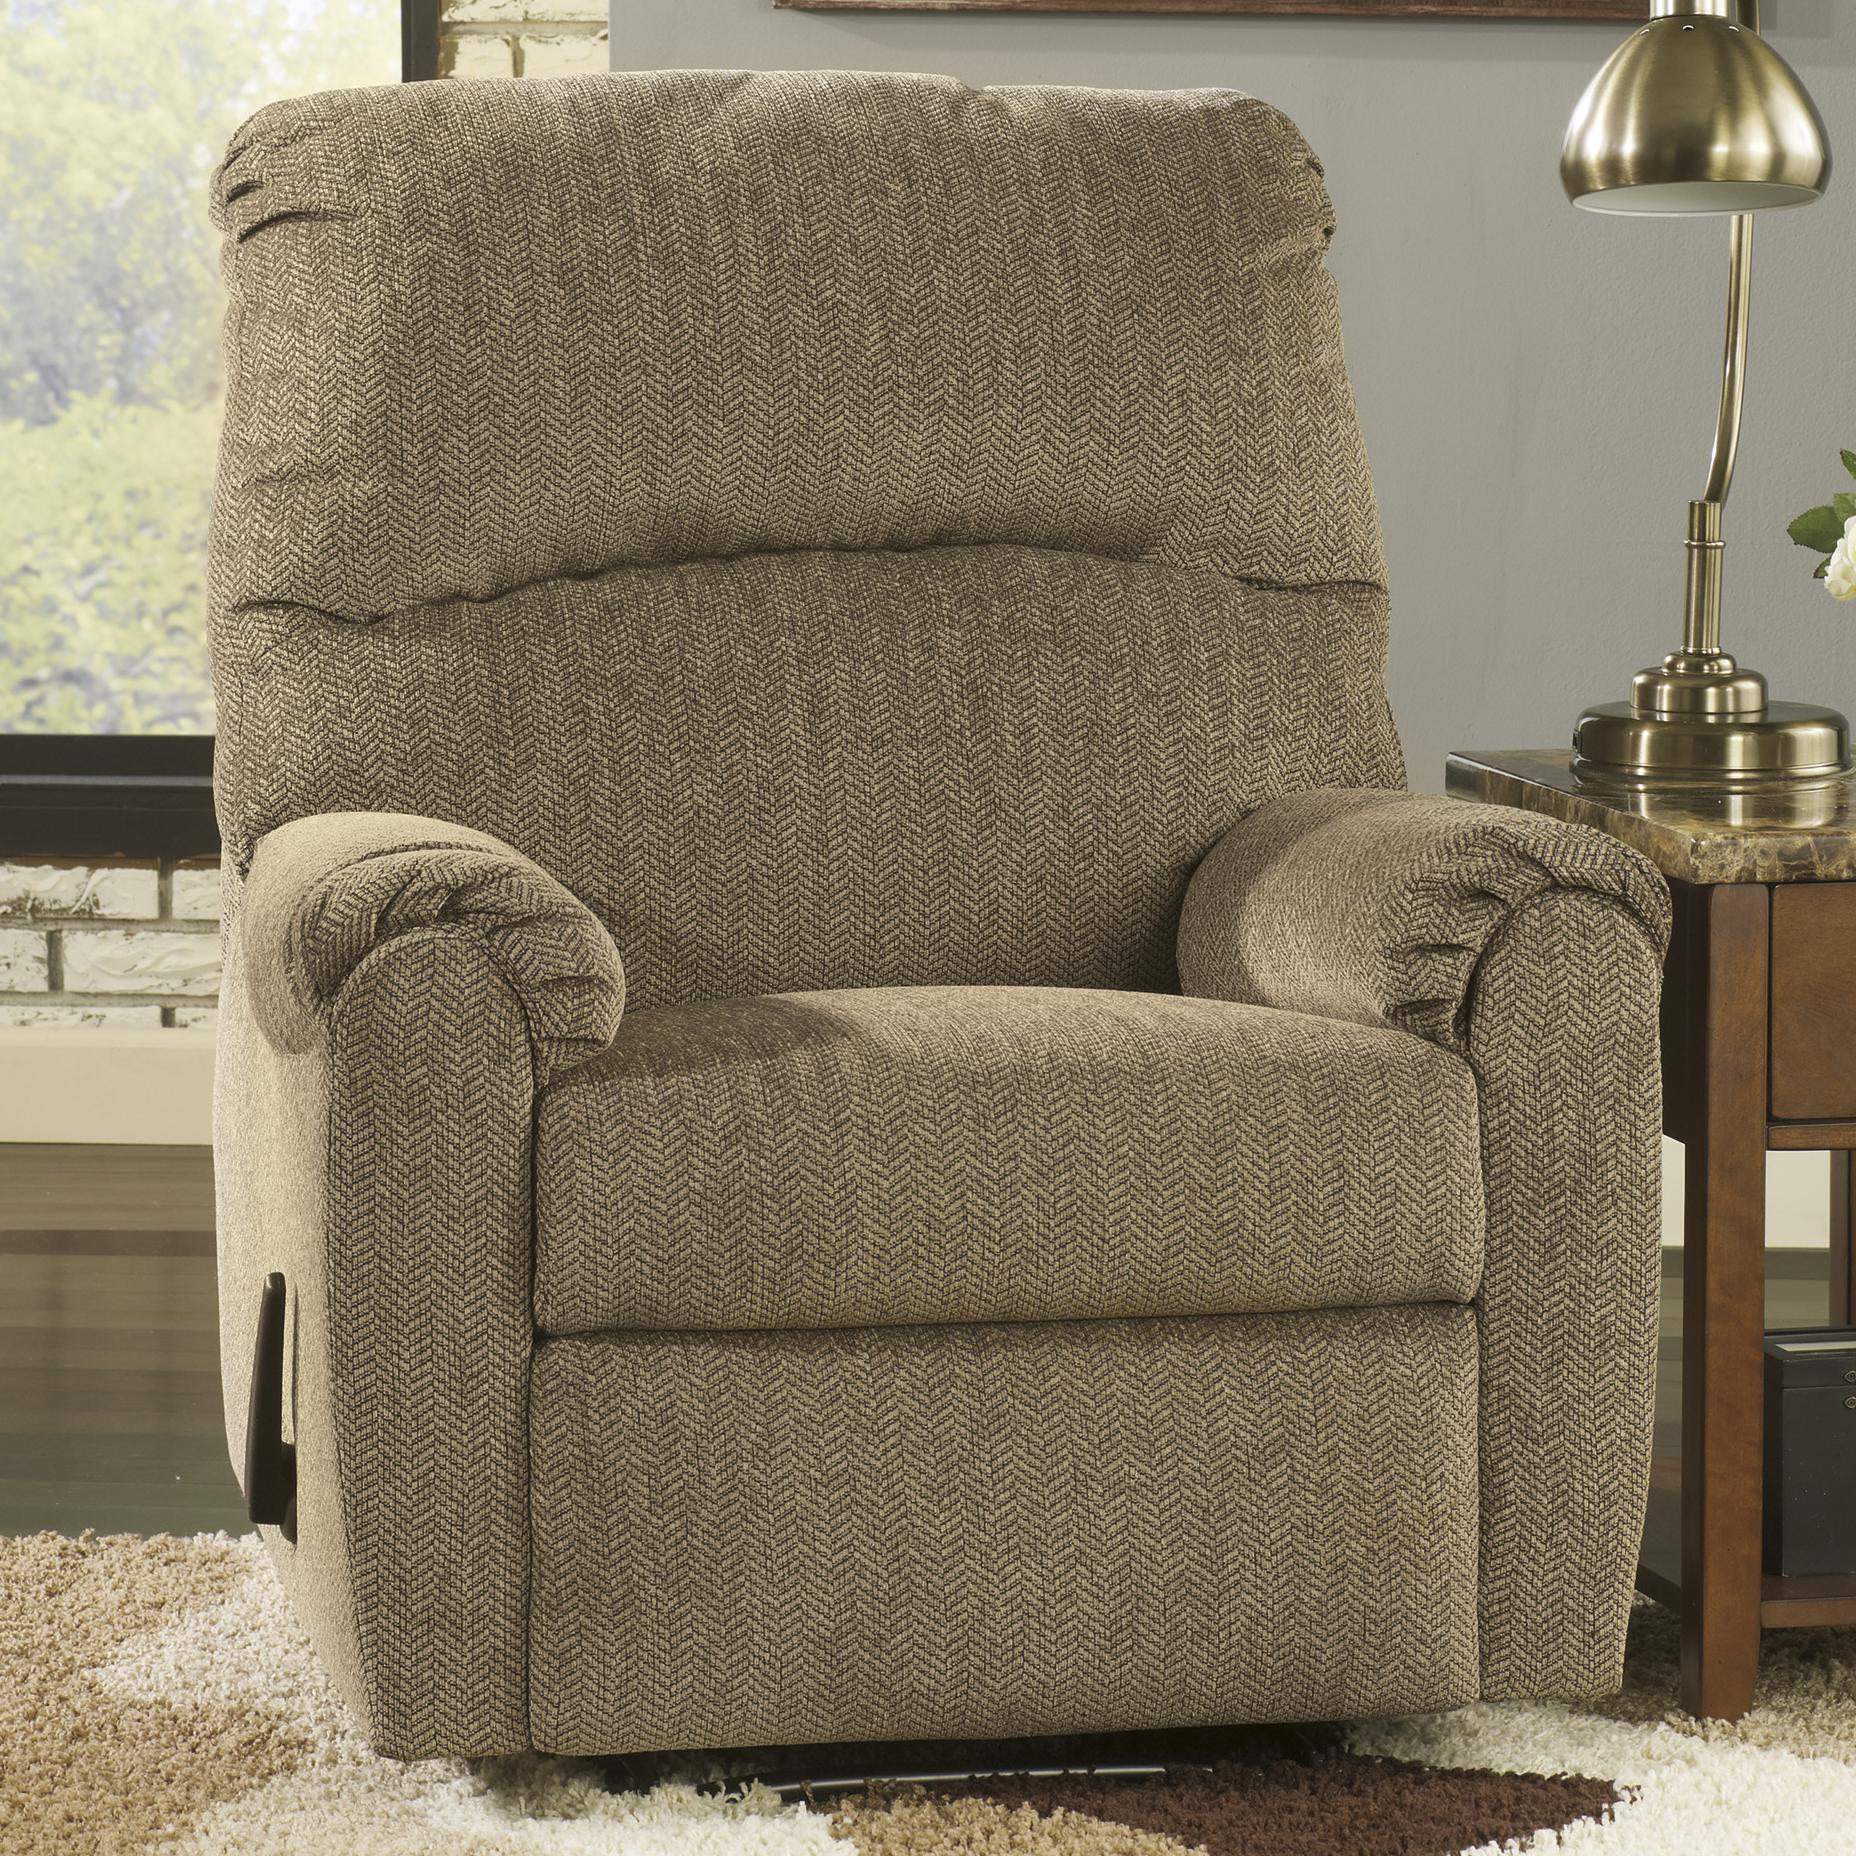 Signature Design by Ashley Pranit - Cork Zero Wall Recliner - Item Number: 1610129